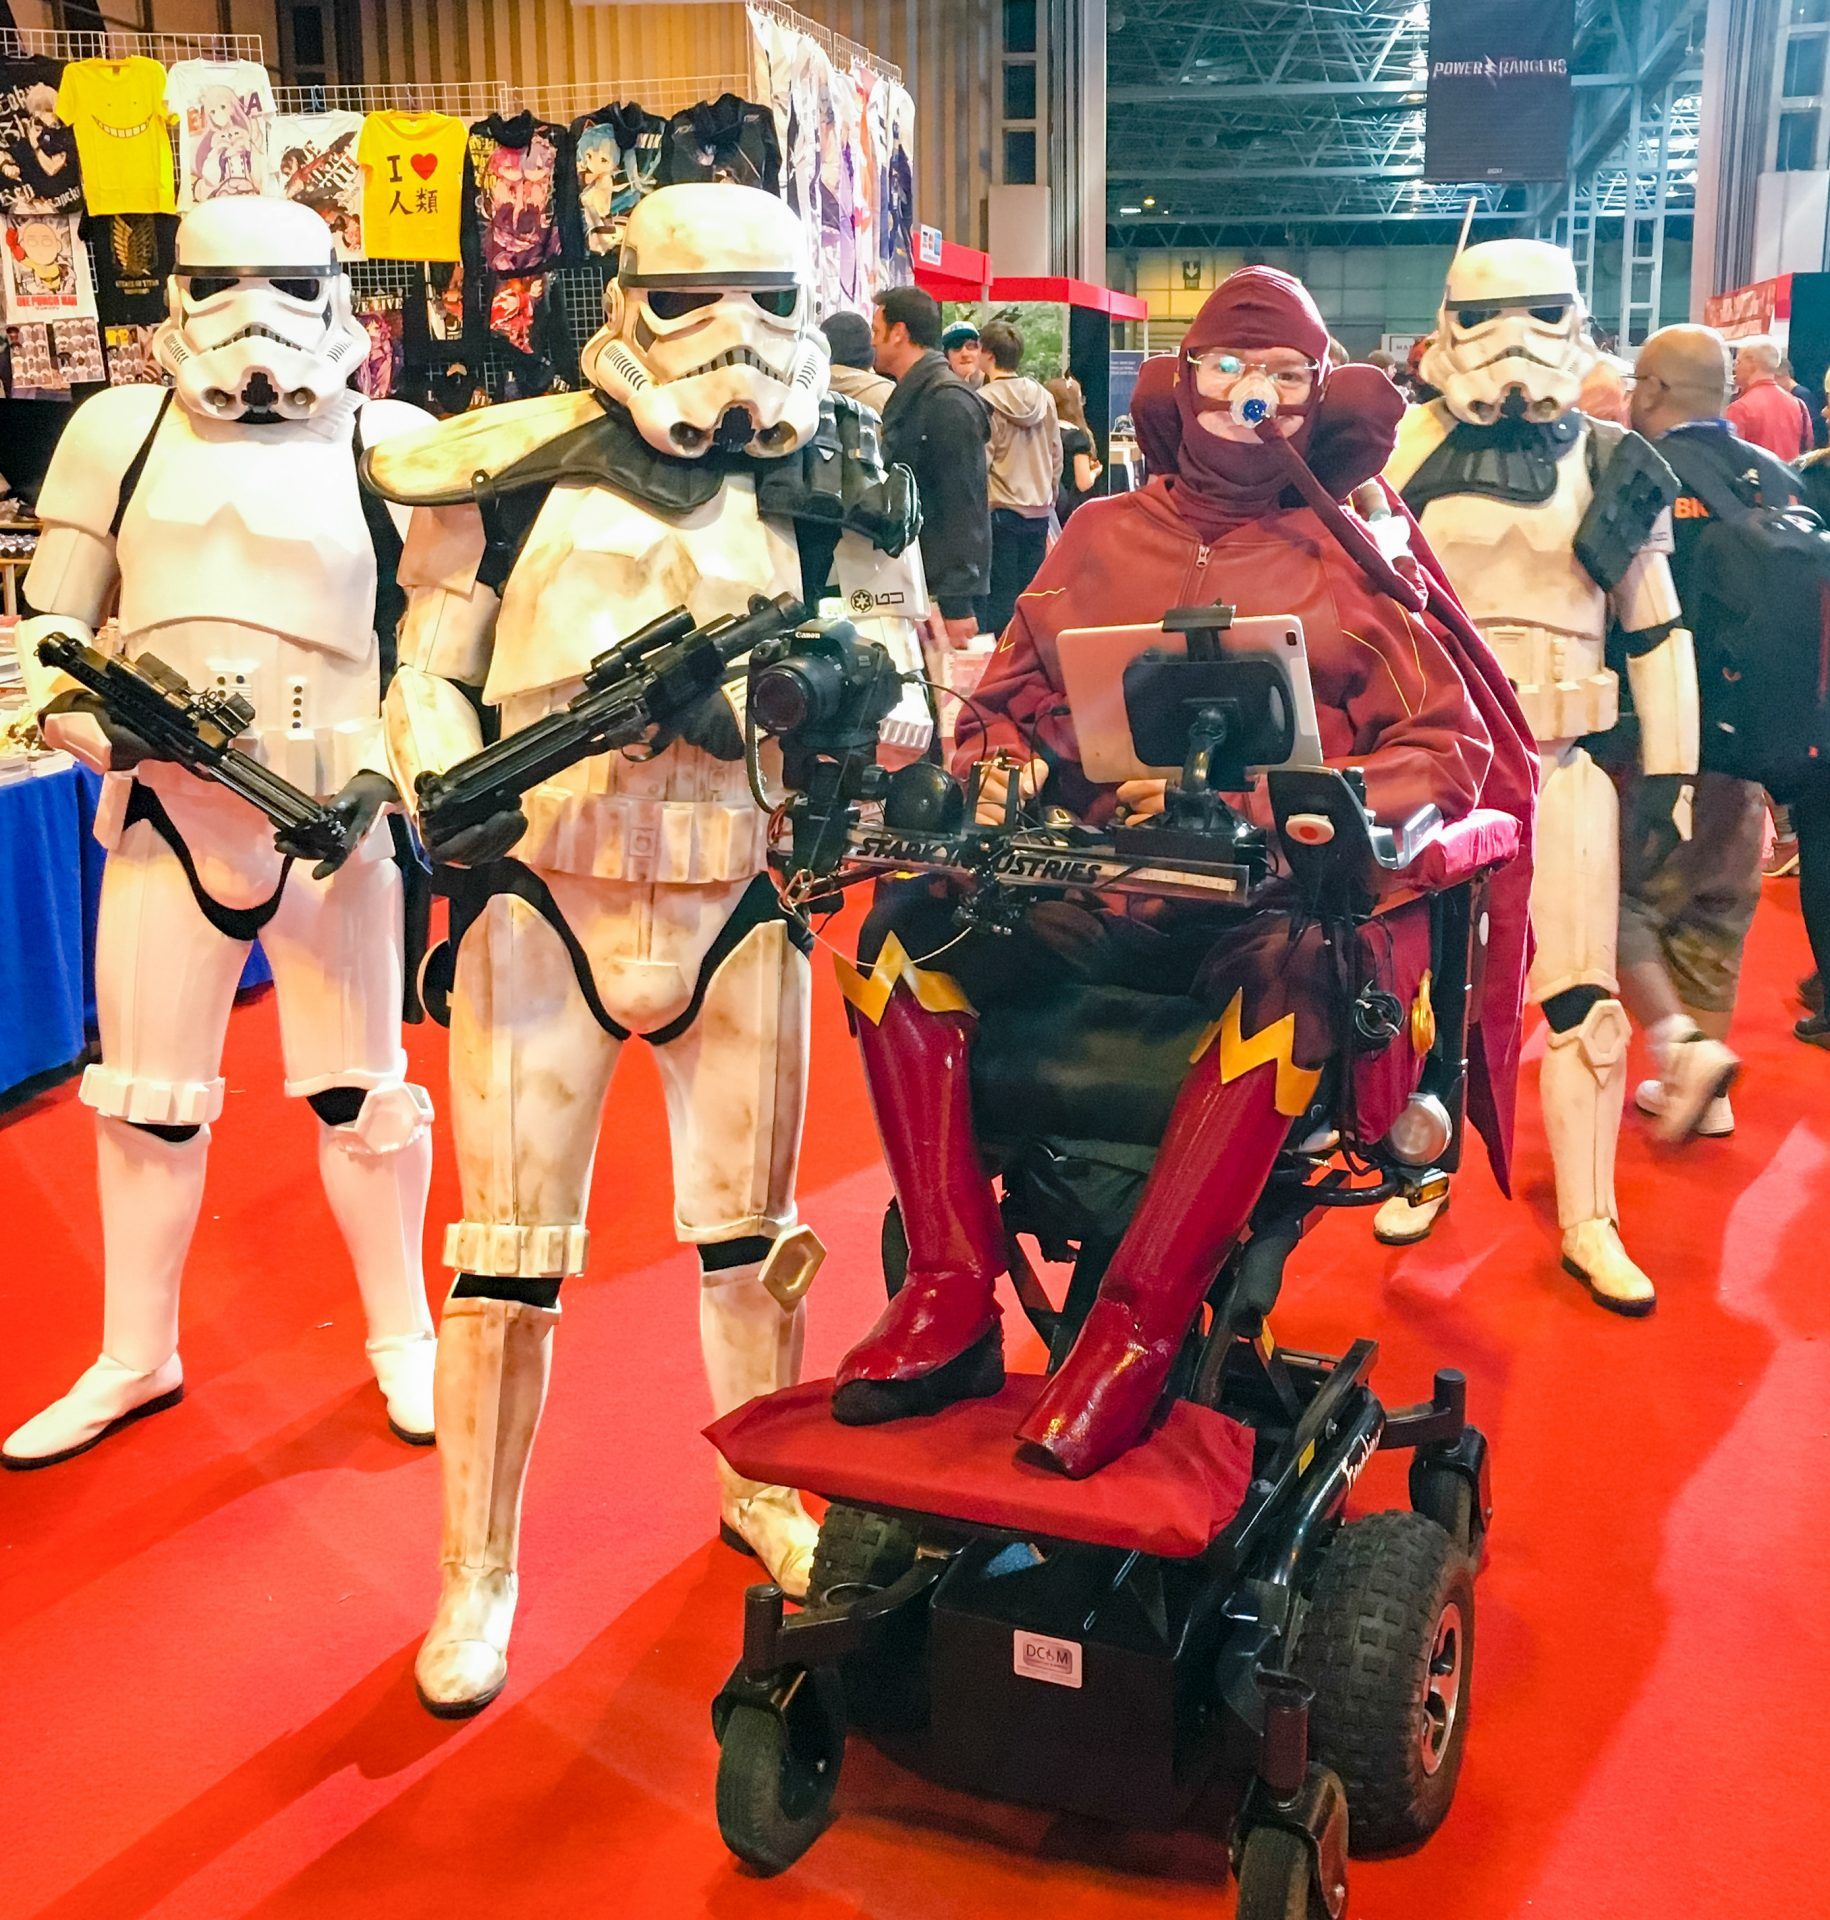 Daniel Baker dressed as The Flash with Stormtroopers around him